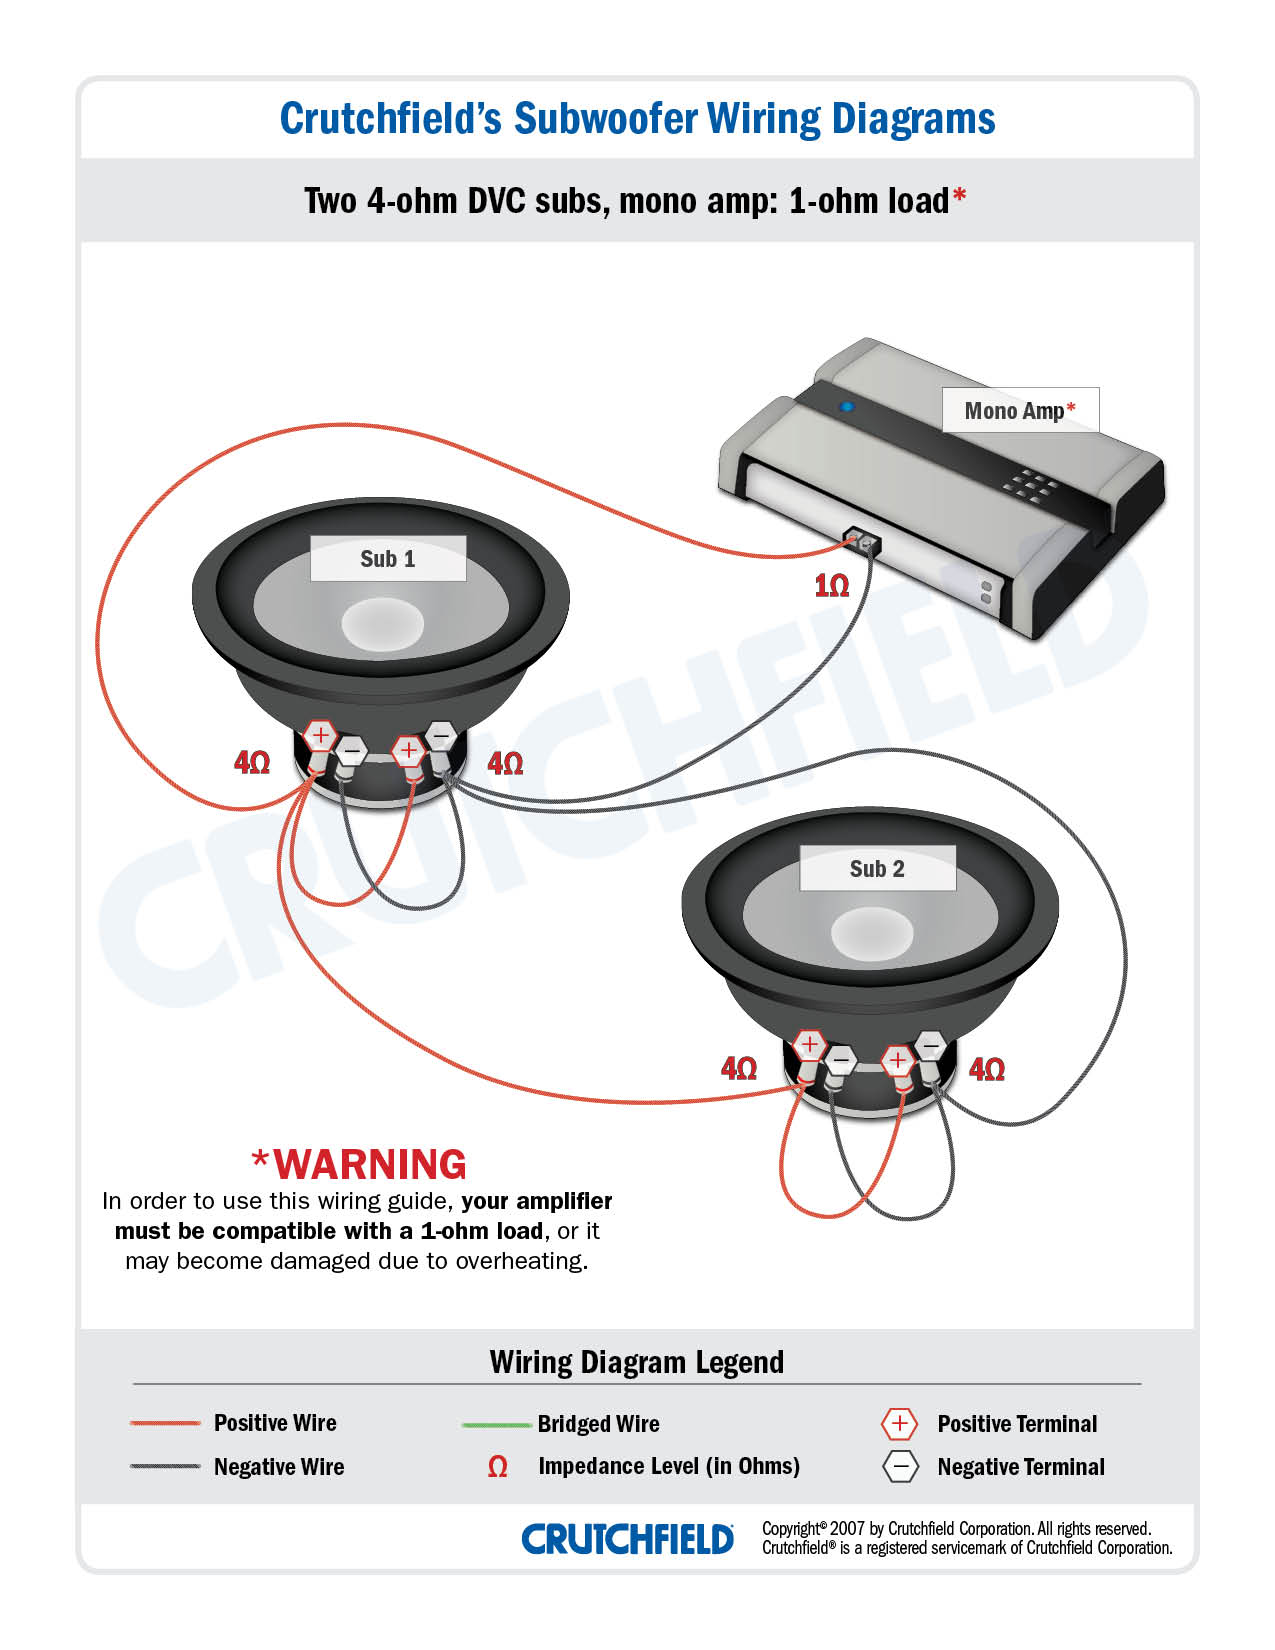 subwoofer wiring diagrams how to wire your subs rh crutchfield com Dual 4 Ohm Subwoofer Wiring 1 Ohm Subwoofer Wiring